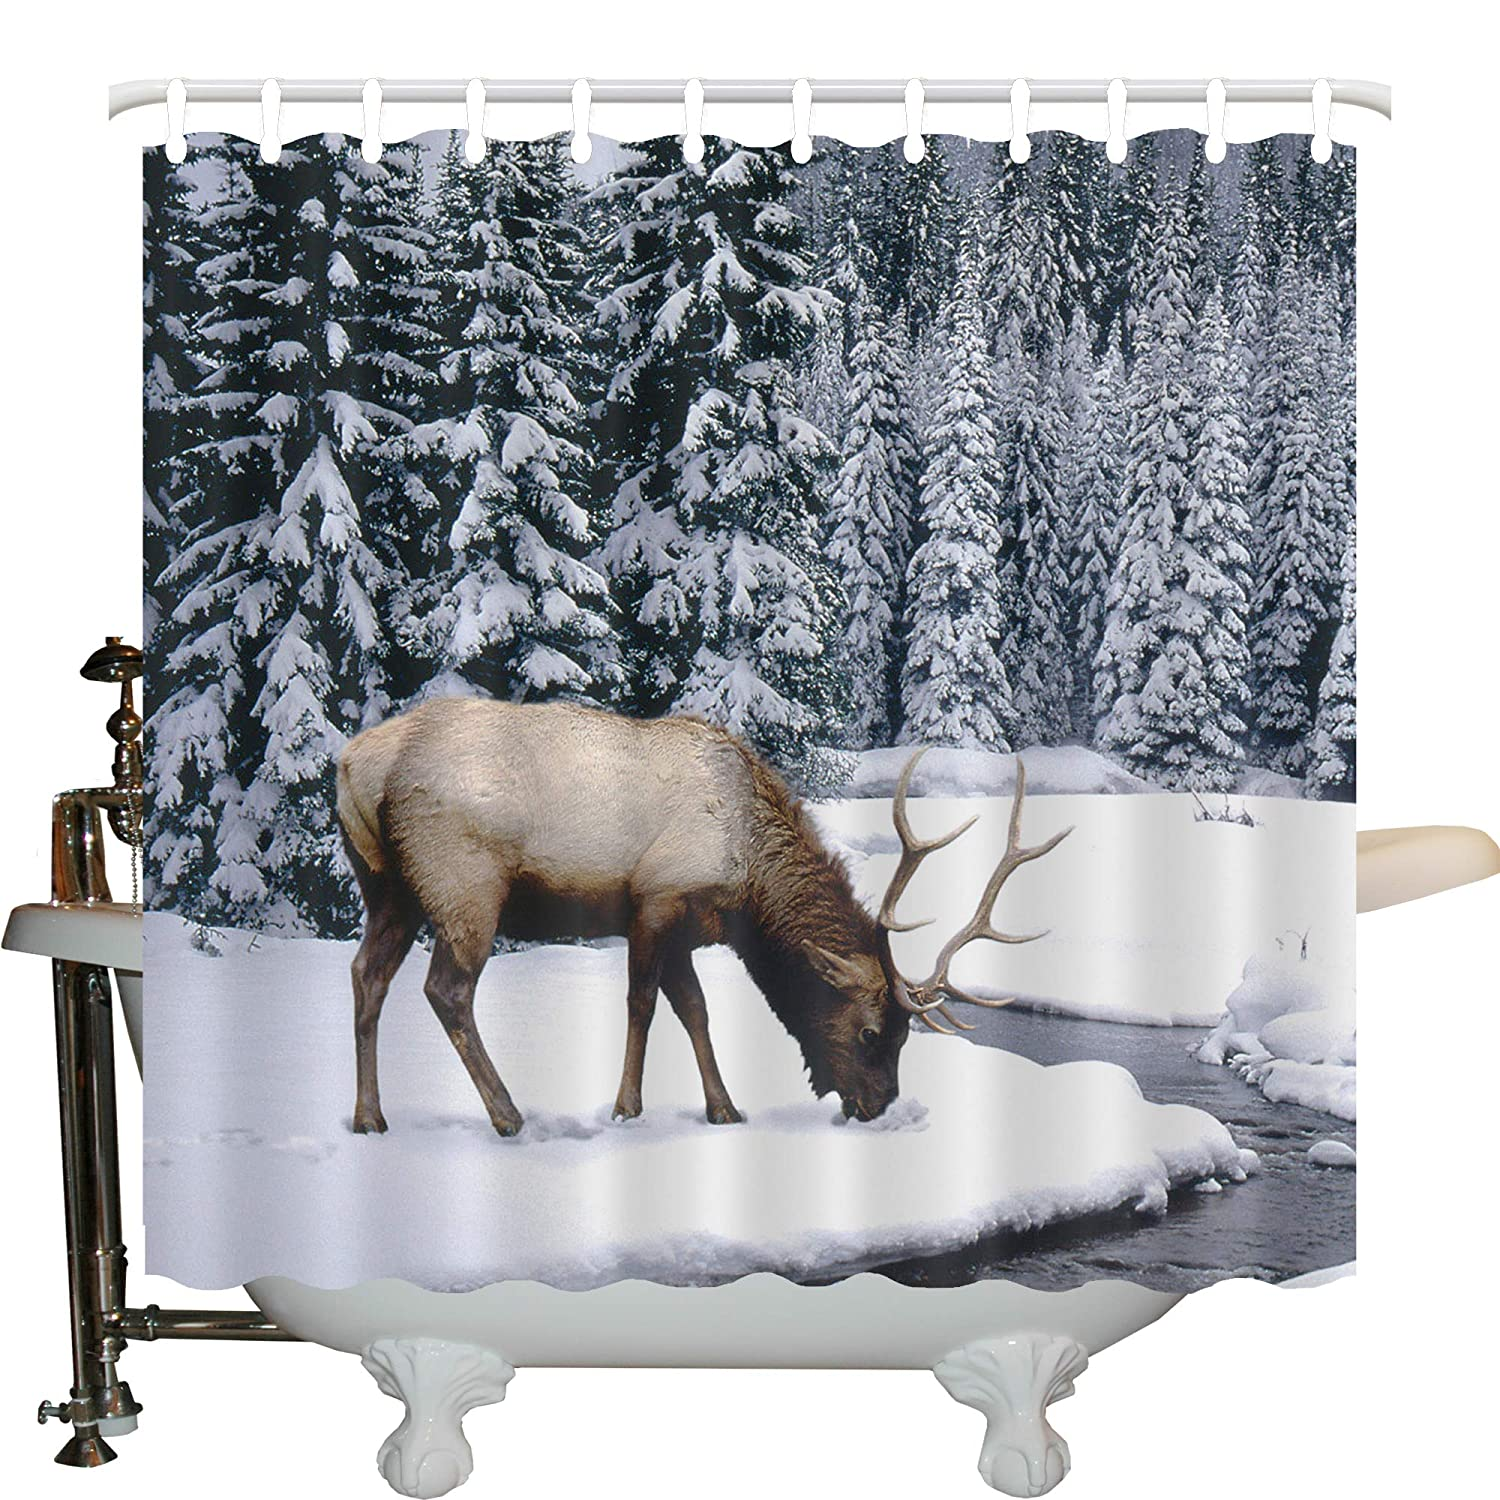 JLBB Moose Shower Curtain Set By Pine Needles Spruce Tree With Antlers Deer Family Snow Winter Design Horns Fabric Bathroom Decor Hooks